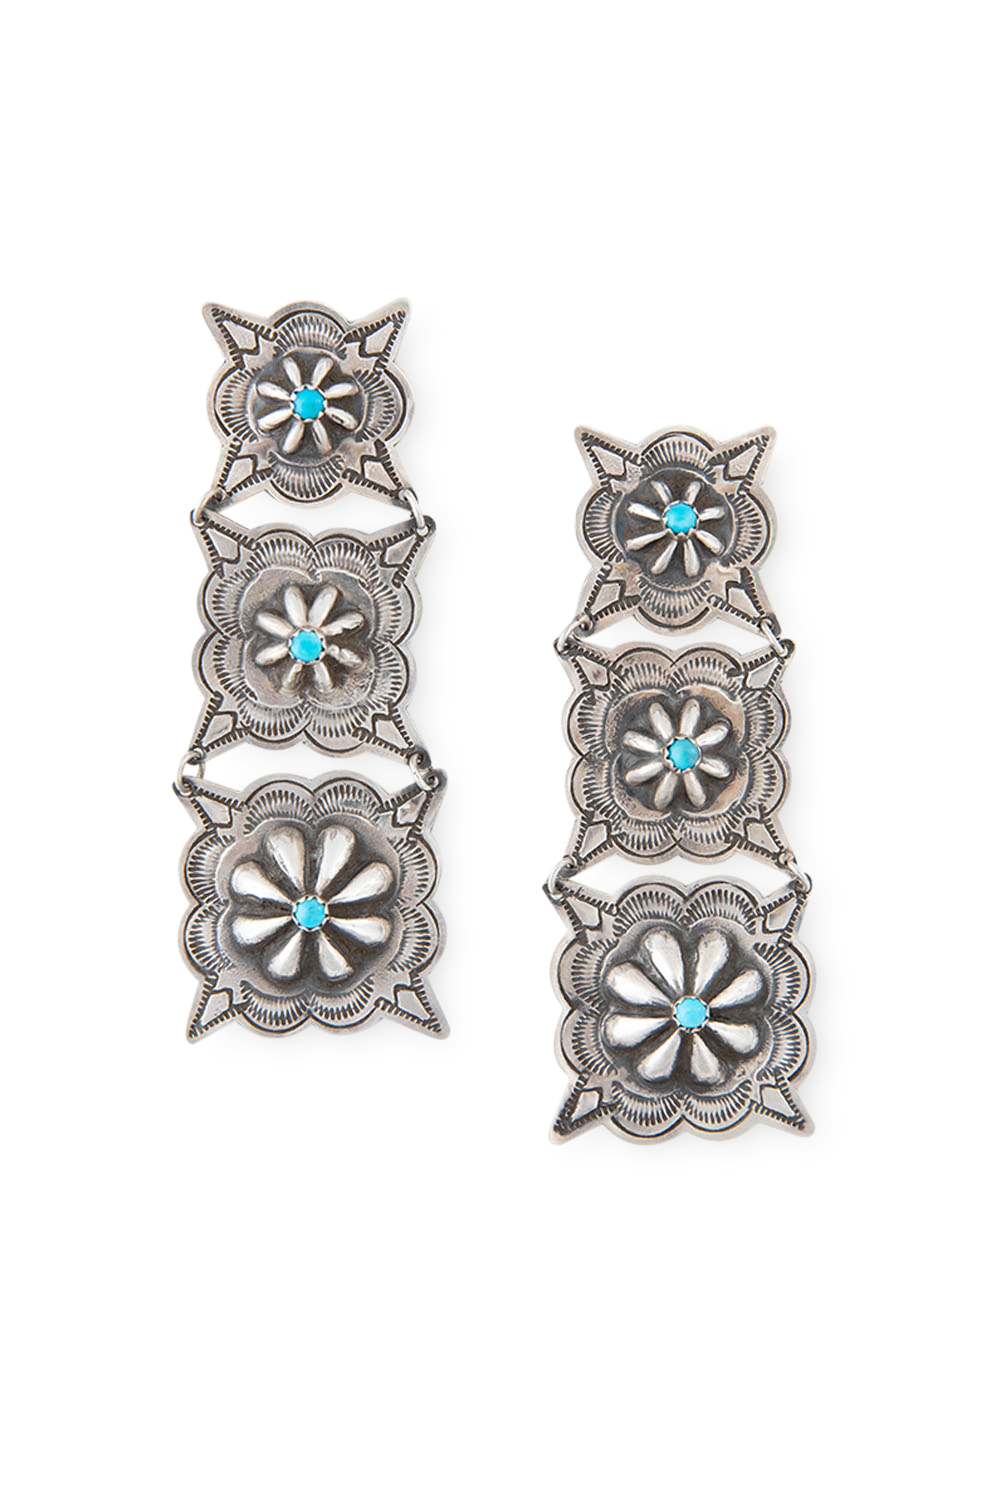 Earrings, Concho, Turquoise, Hallmark, 380